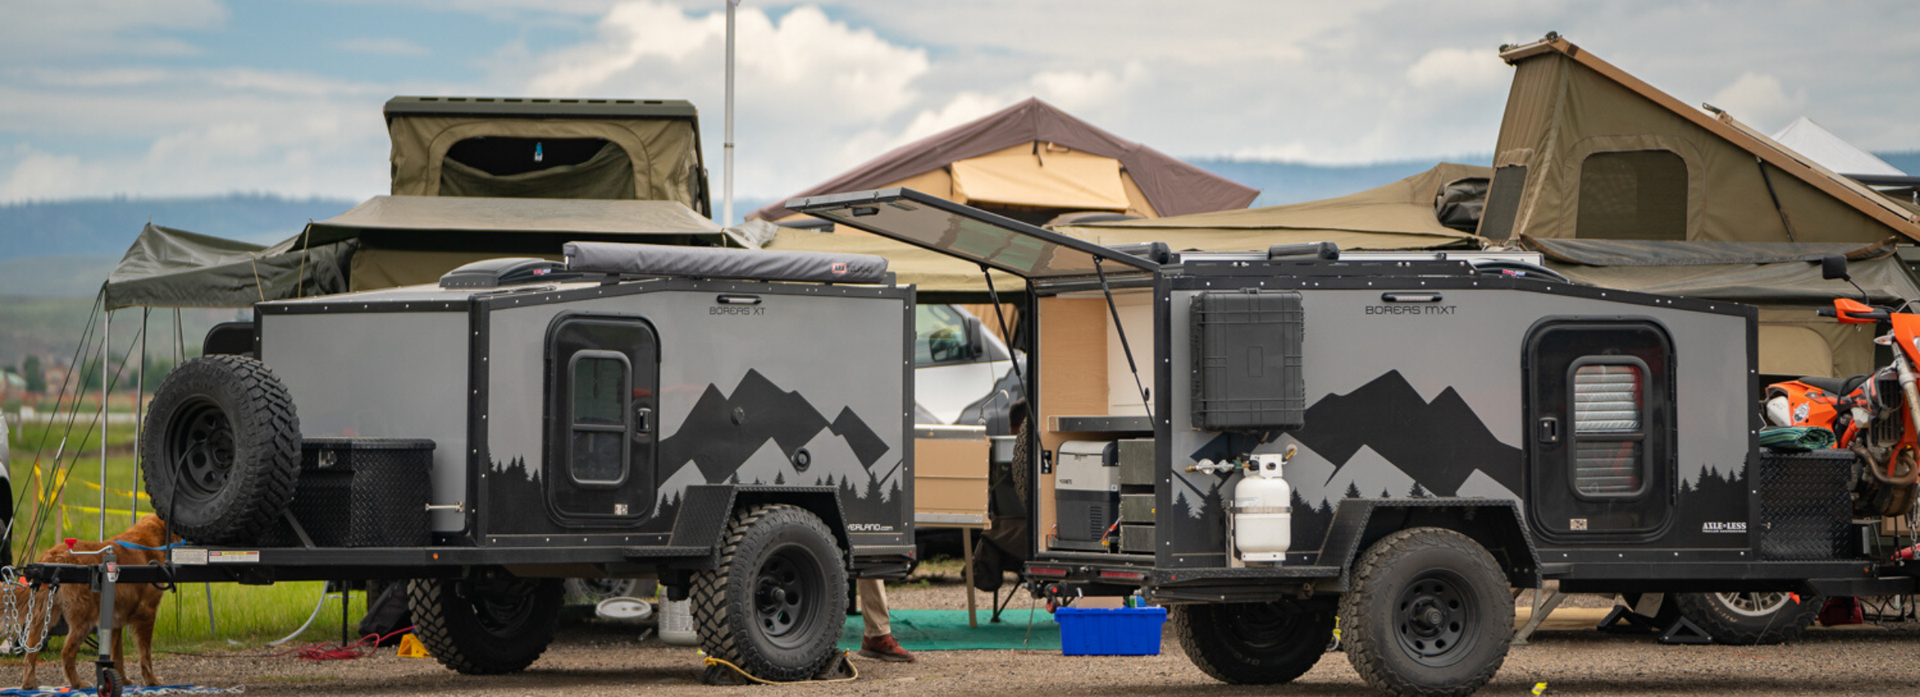 Into The Wild Overland Camper Dealers are Reliable and Reputable